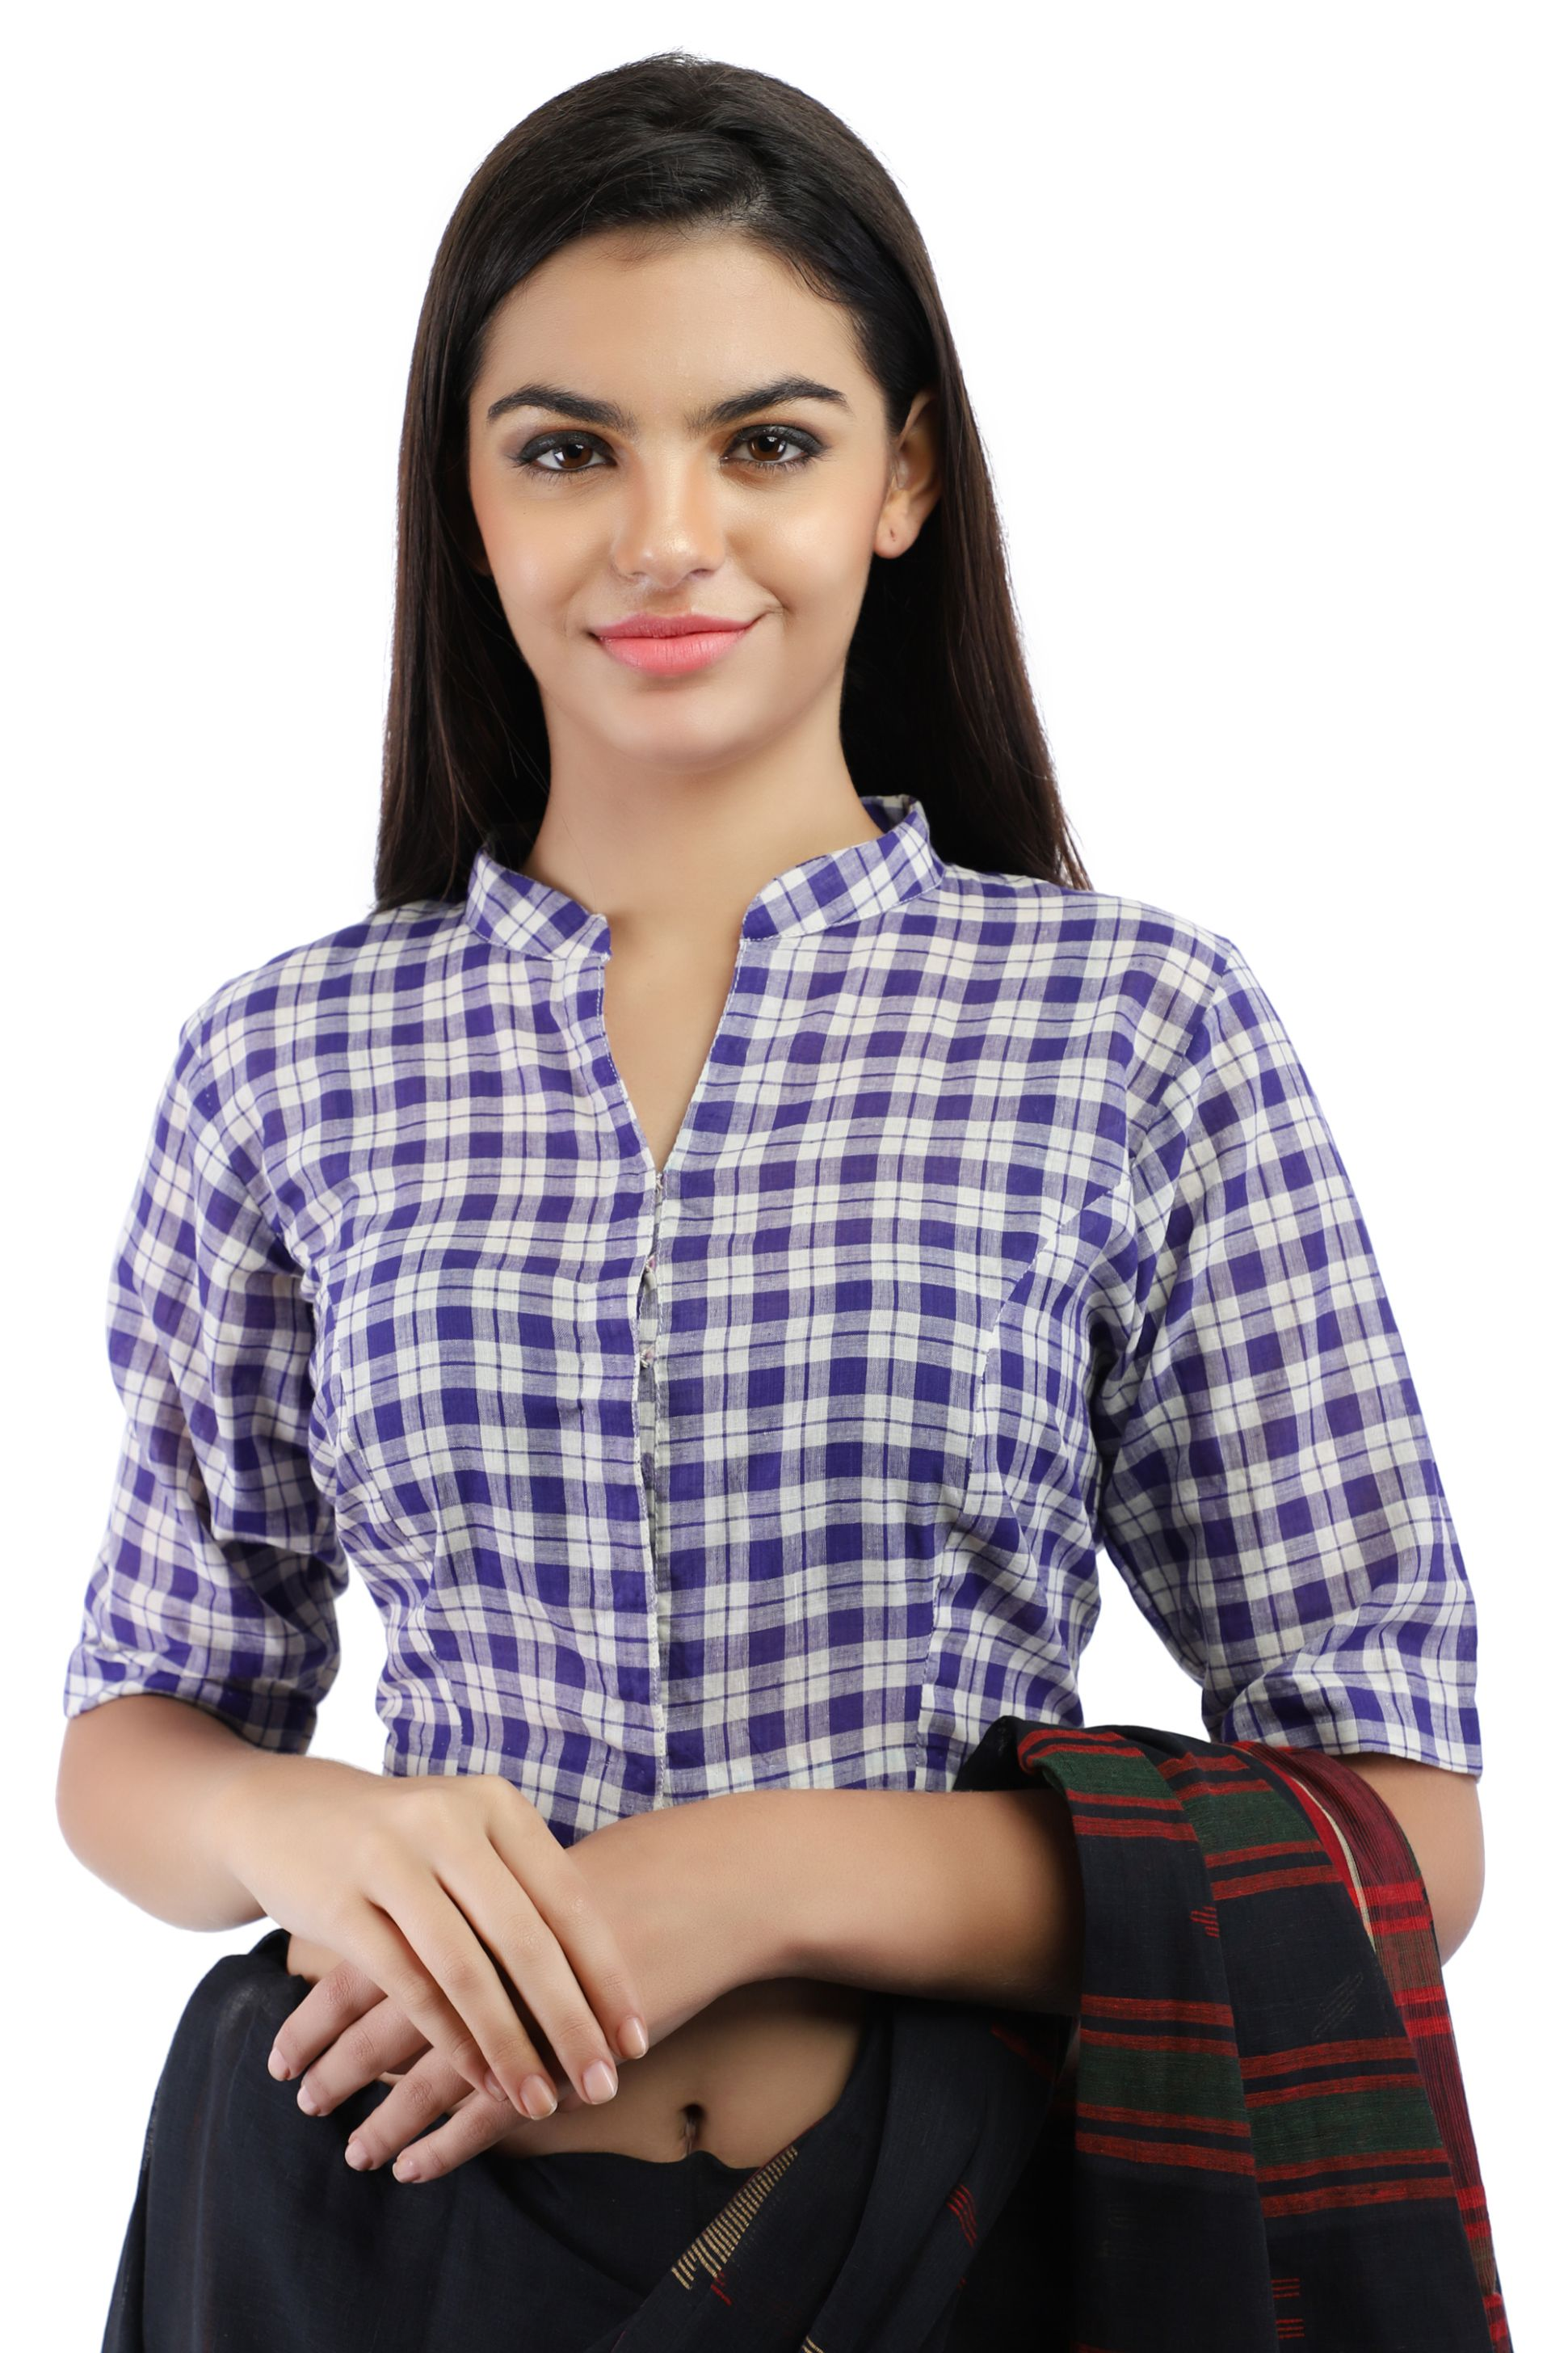 Pure Cotton Handloom Checks Blouse in Purple and White chinese Collar With Hook Closure on Front